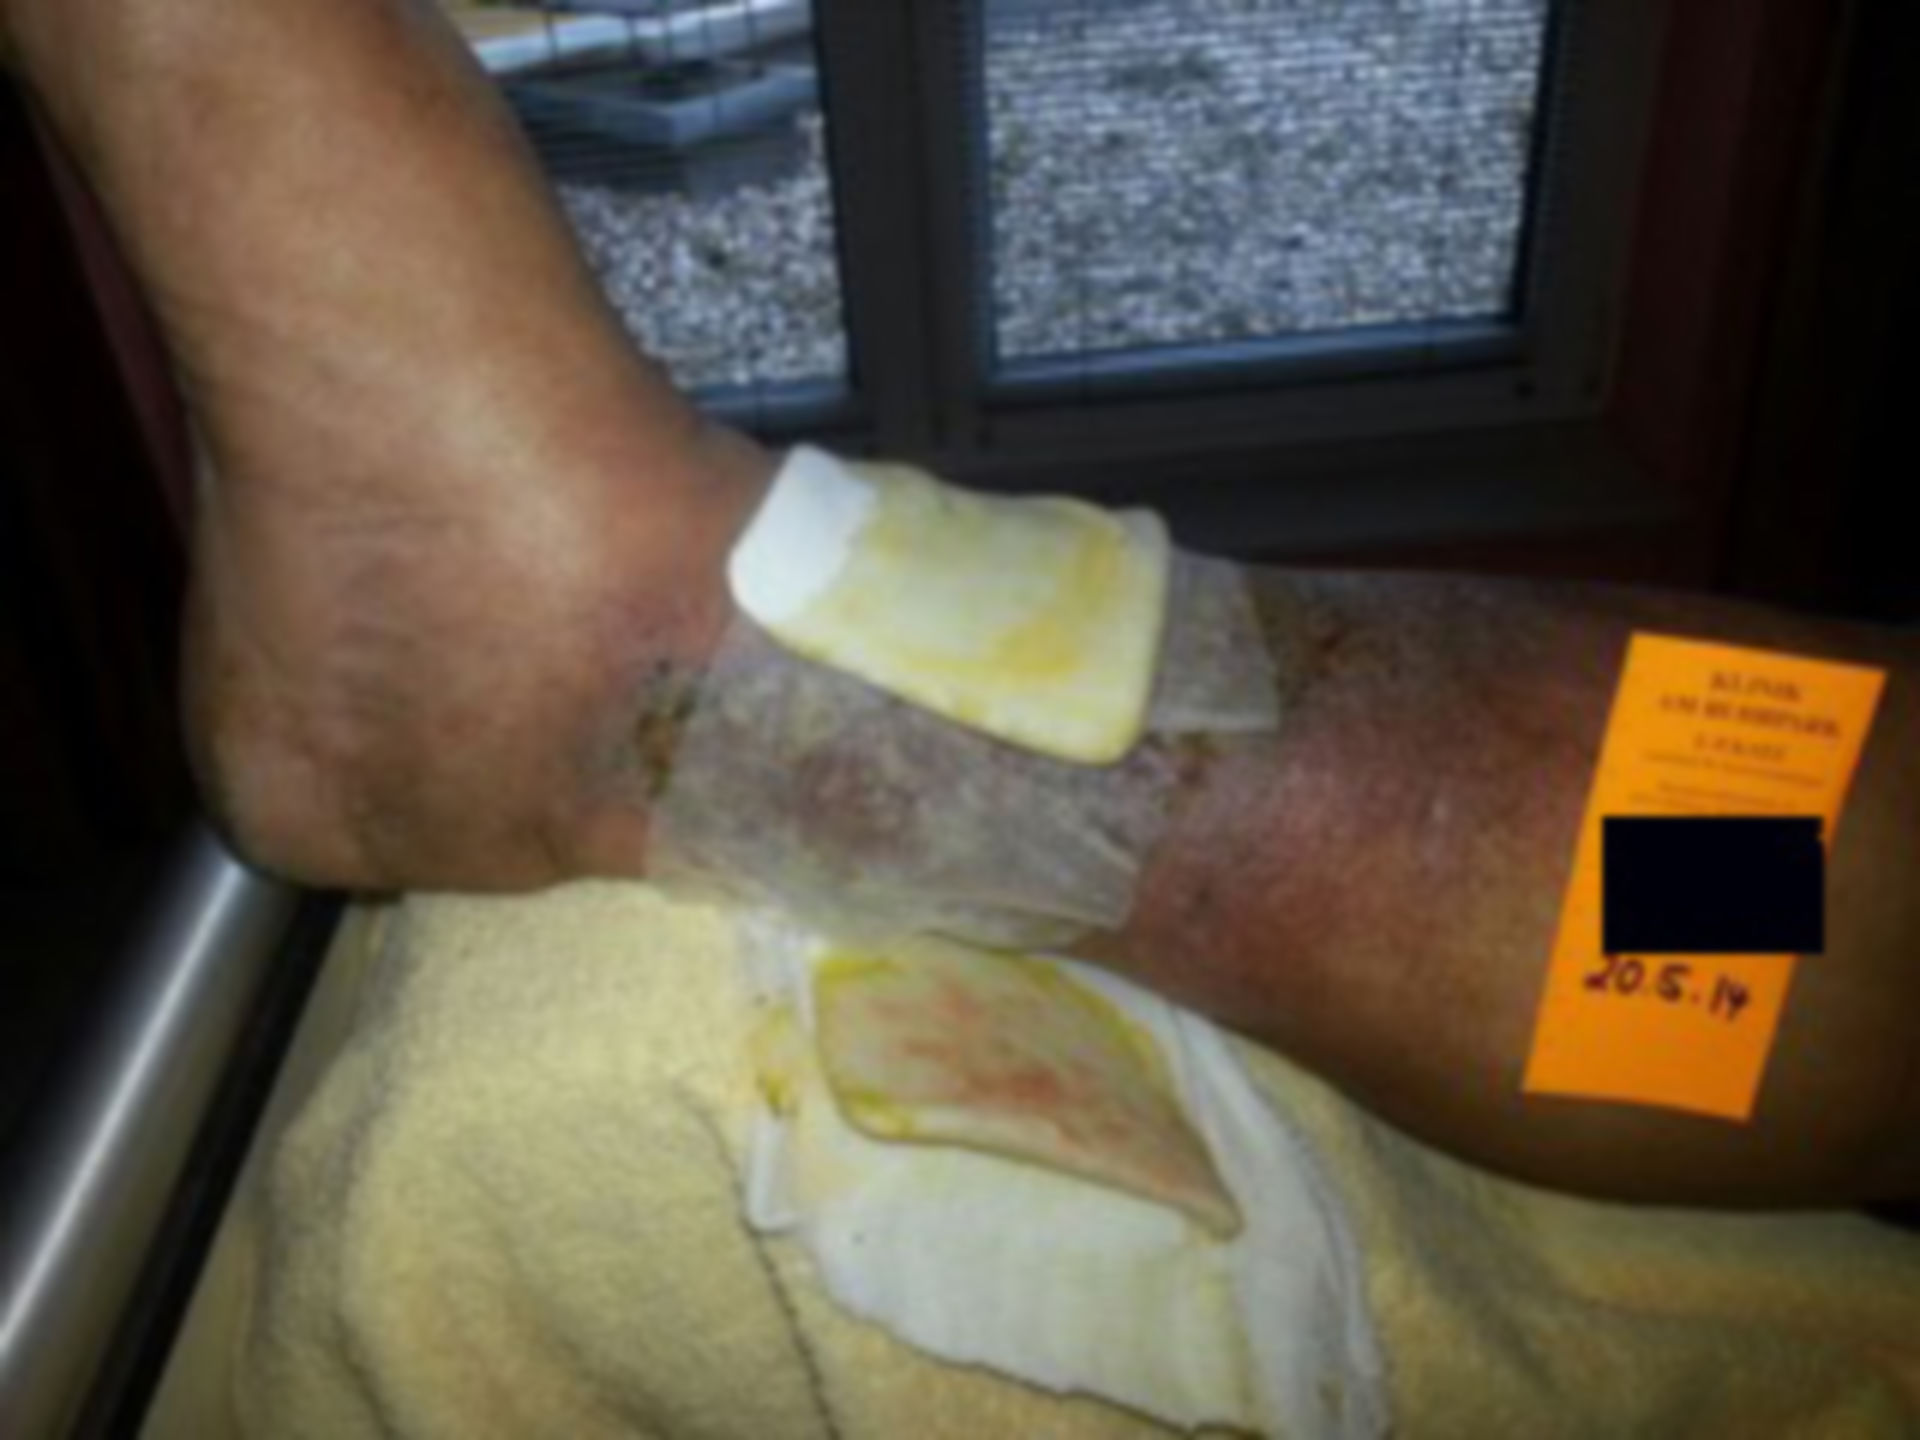 Ulcus cruris - open wound for a year